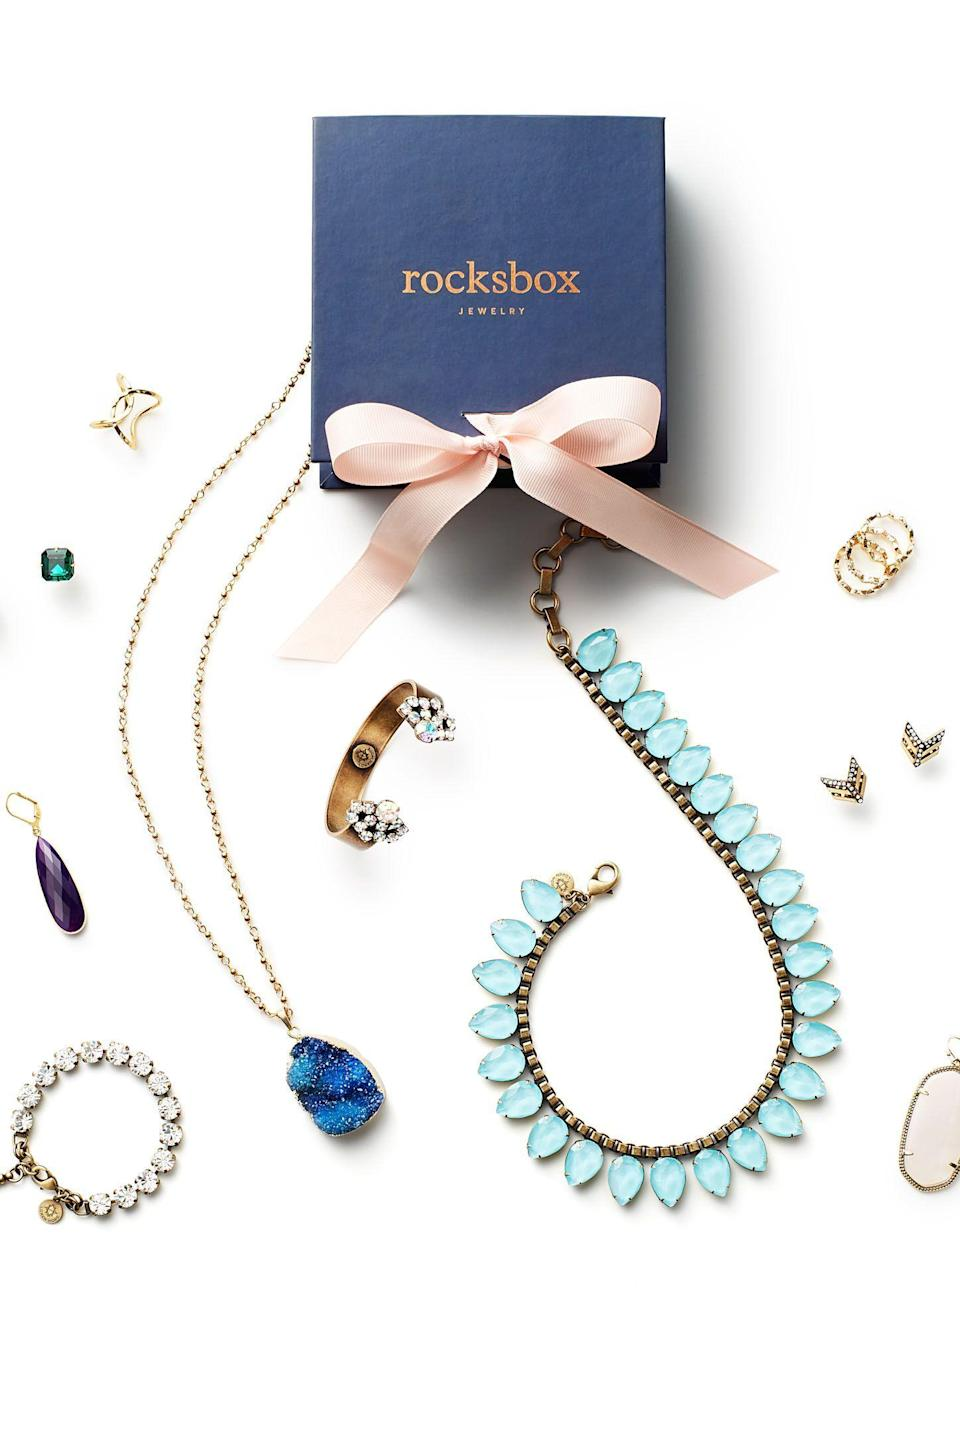 """<strong>Rocksbox</strong> rocksbox.com <strong>$49.00</strong> <a href=""""https://go.redirectingat.com?id=74968X1596630&url=https%3A%2F%2Fwww.rocksbox.com%2Fgifts&sref=https%3A%2F%2Fwww.goodhousekeeping.com%2Fholidays%2Fgift-ideas%2Fg4079%2Flast-minute-holiday-gifts%2F"""" rel=""""nofollow noopener"""" target=""""_blank"""" data-ylk=""""slk:Shop Now"""" class=""""link rapid-noclick-resp"""">Shop Now</a> When you sign her up for Rocksbox, she can look forward to three pieces of jewelry each month (choose from three-, six- or 12-month gift options). If she gravitates toward one piece in the selection, she can apply a $21 credit to her purchase (and mail back the rest).<br>"""